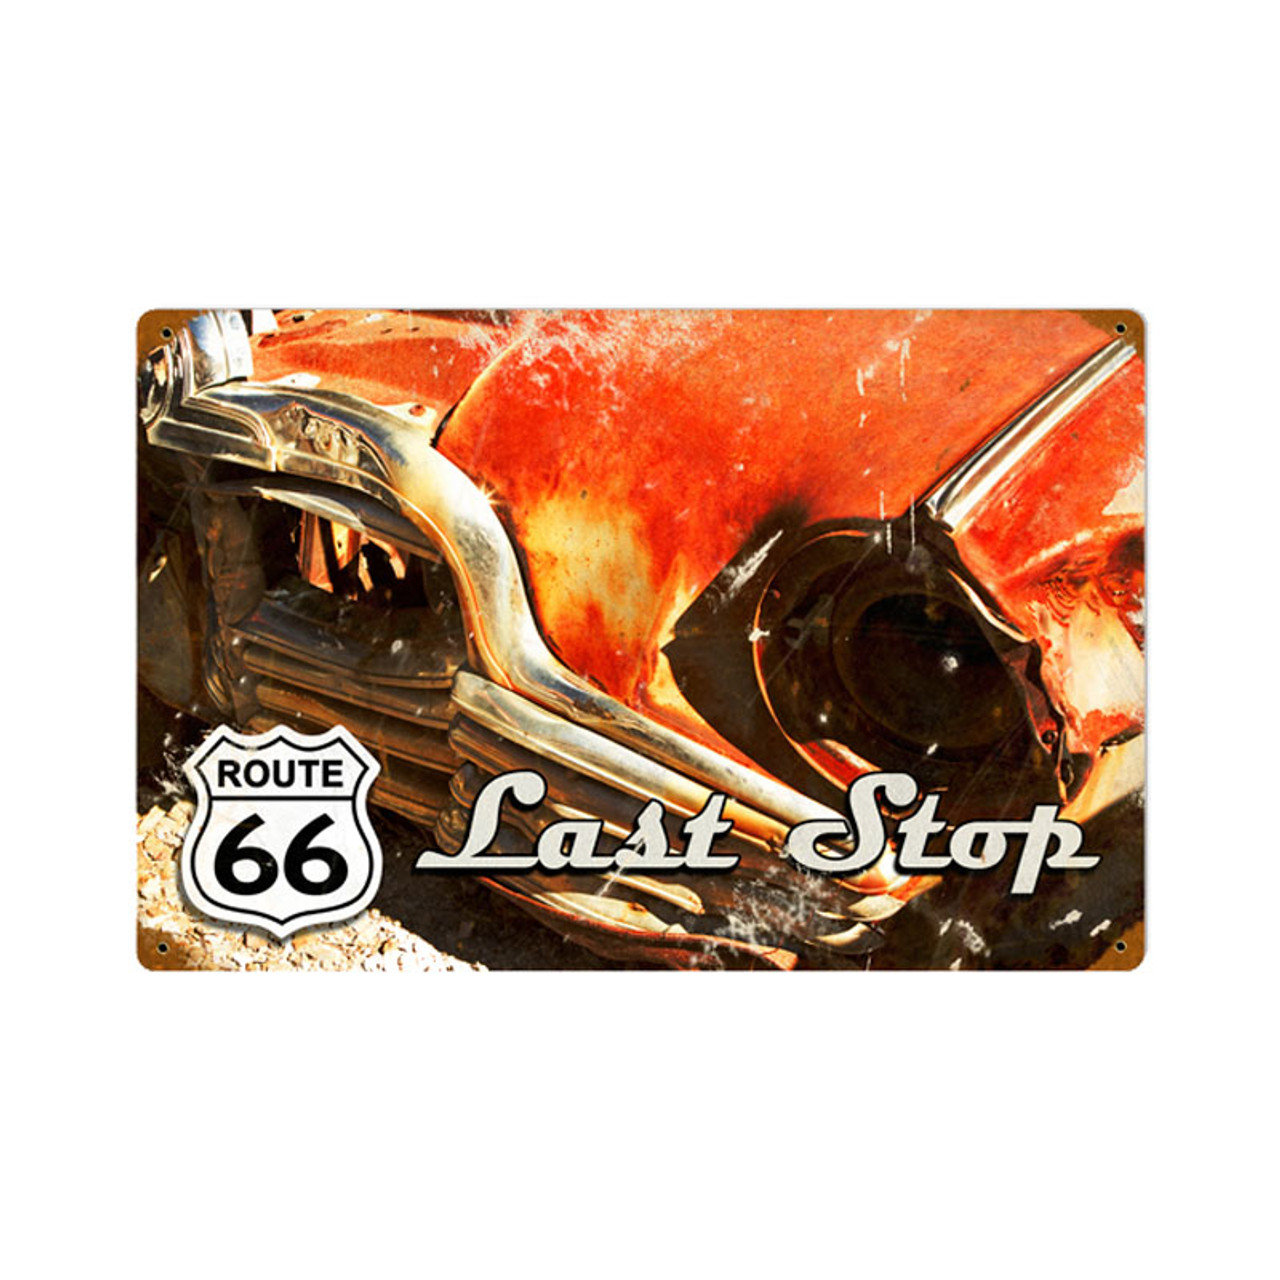 Route 66 Last Stop Metal Sign 18 x 12 Inches